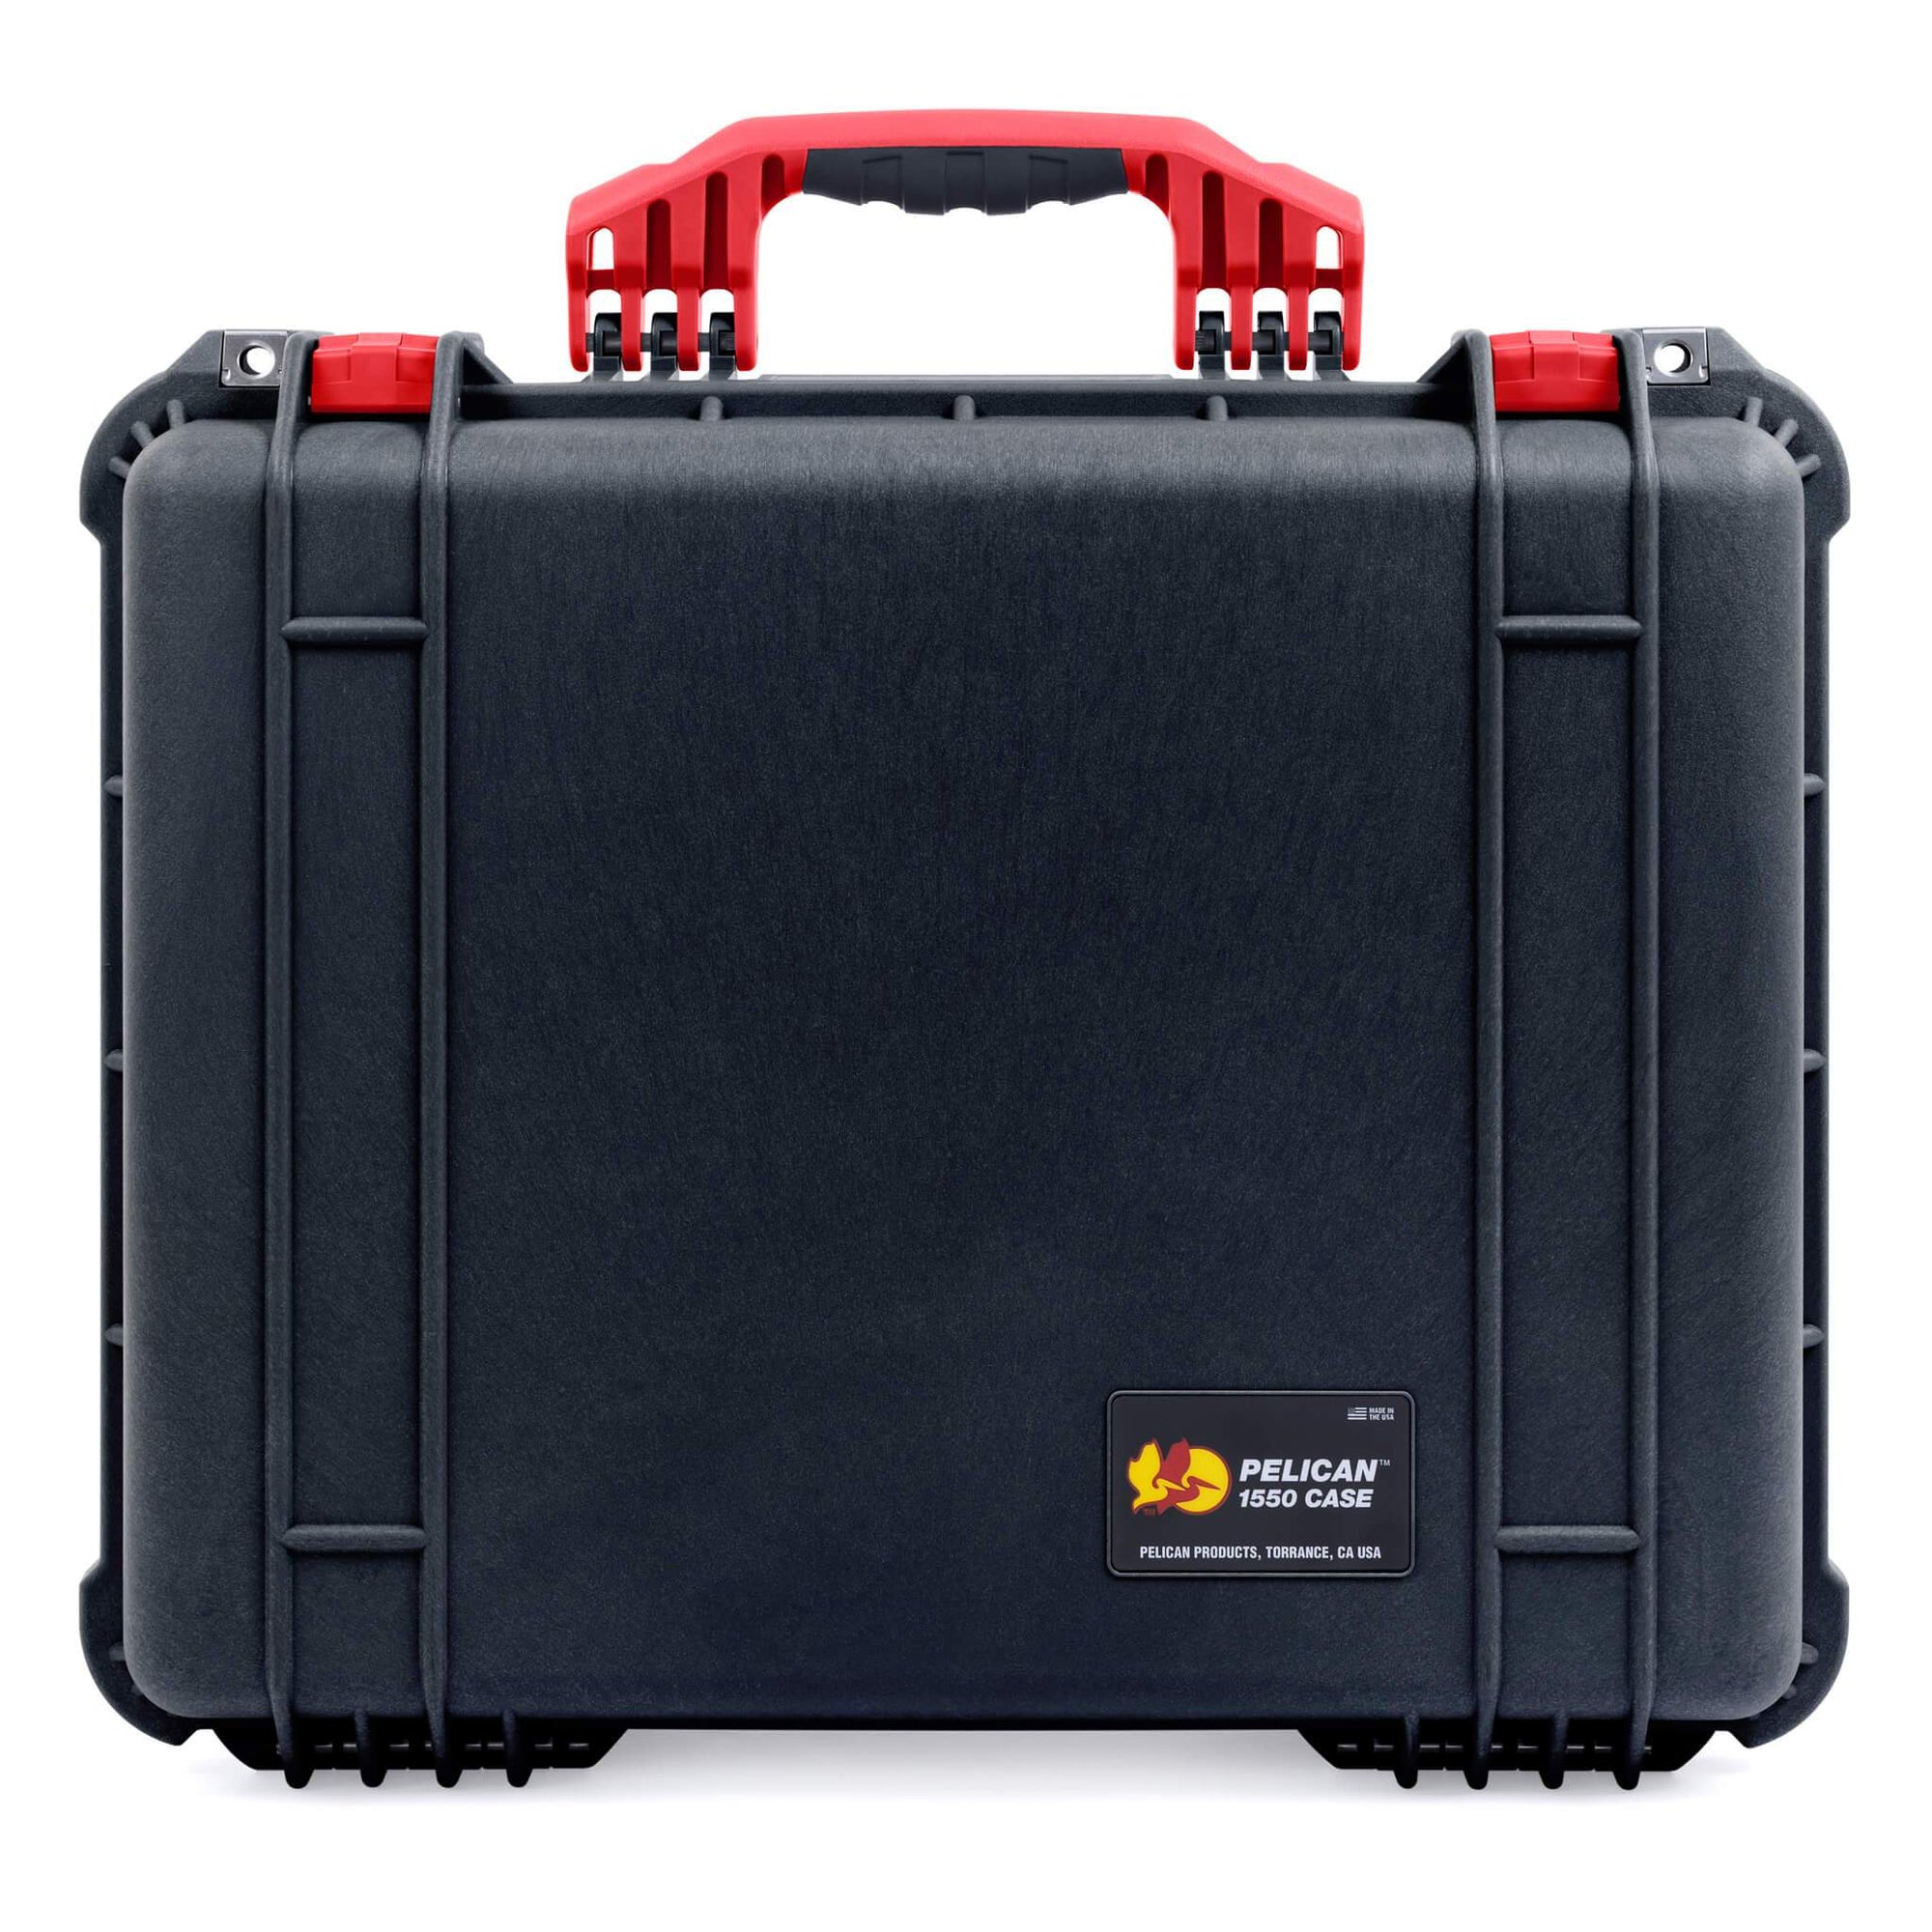 Pelican 1550 Case, Black with Red Handle & Latches